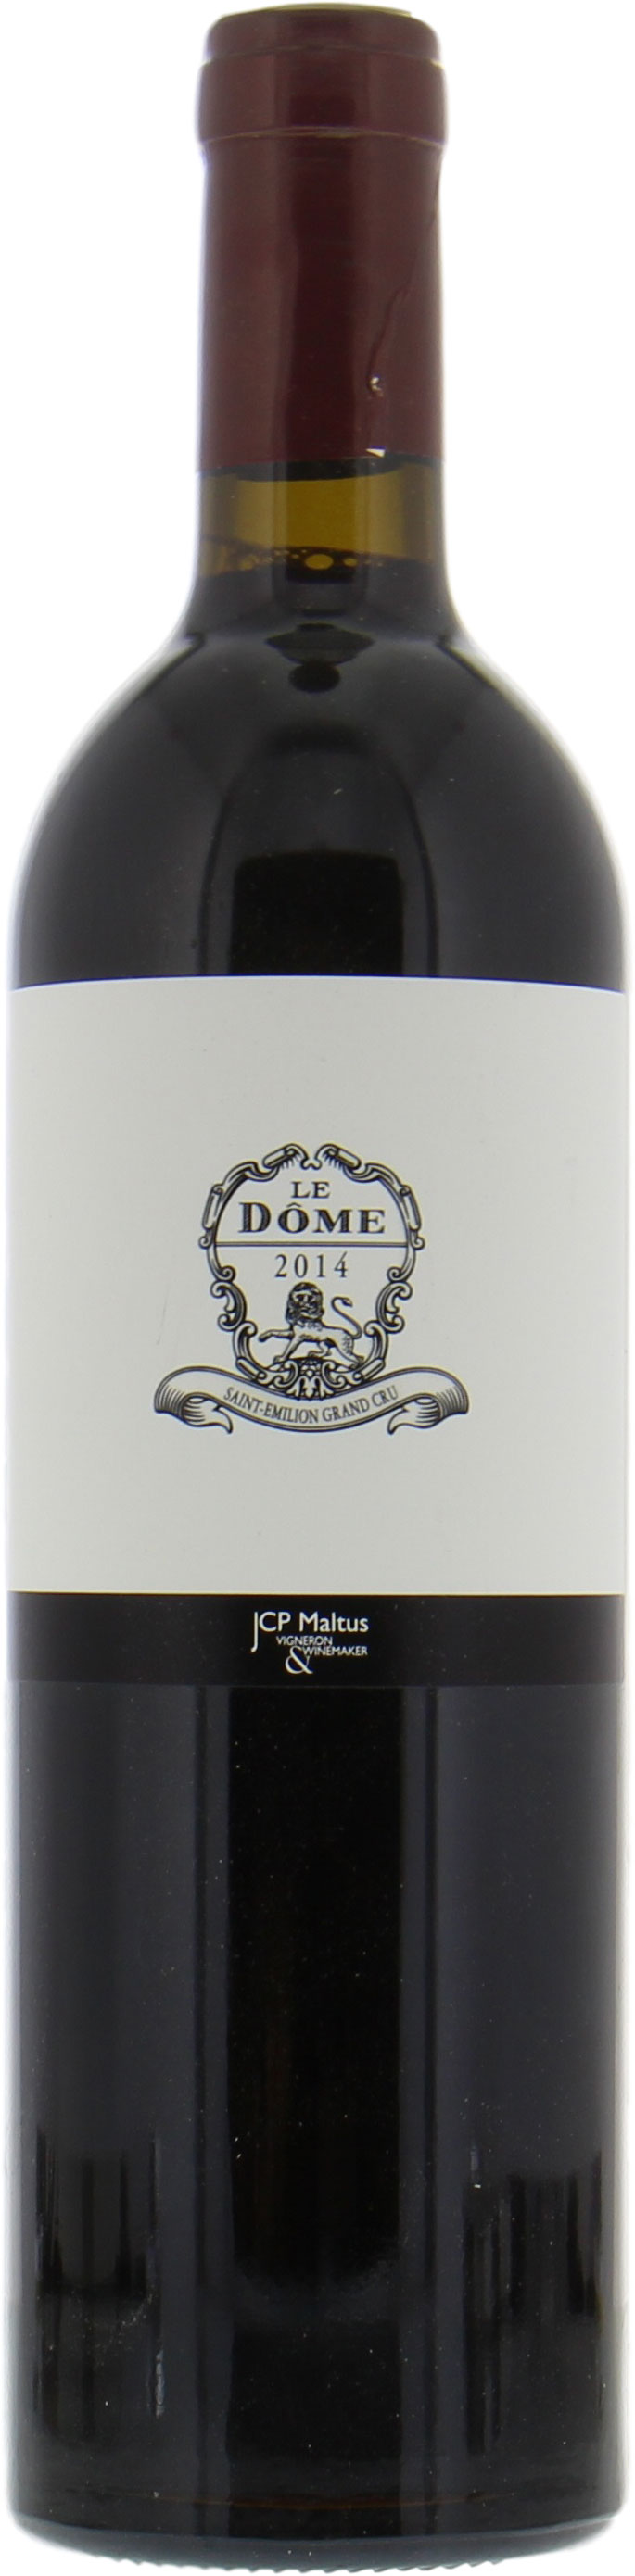 Chateau Le Dome - Chateau Le Dome 2014